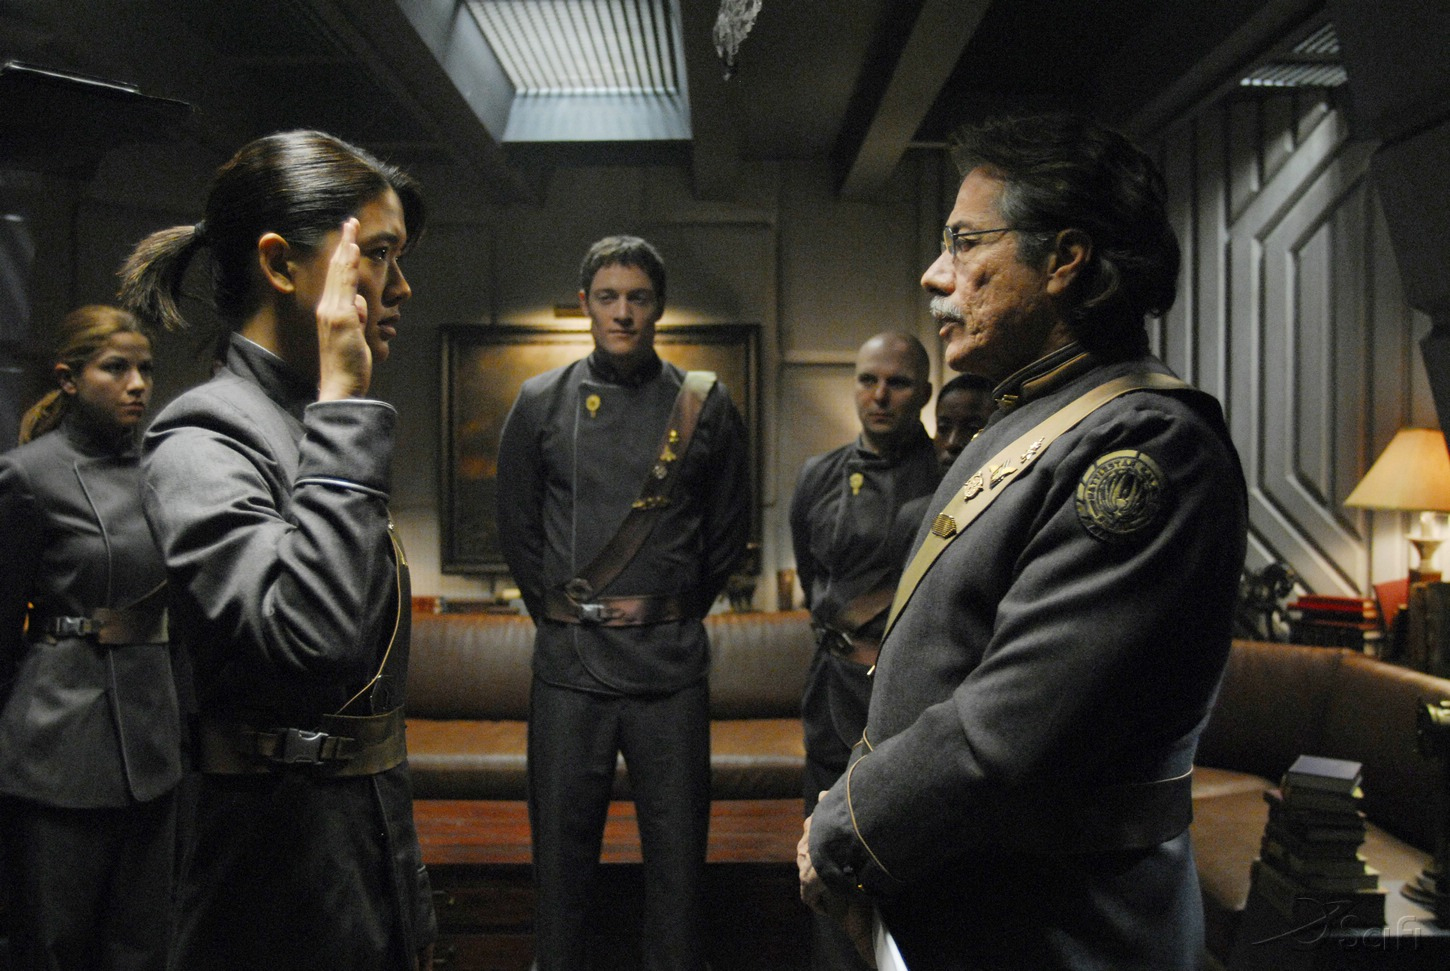 Edward James Olmos, Grace Park, and Tahmoh Penikett in Battlestar Galactica (2004)